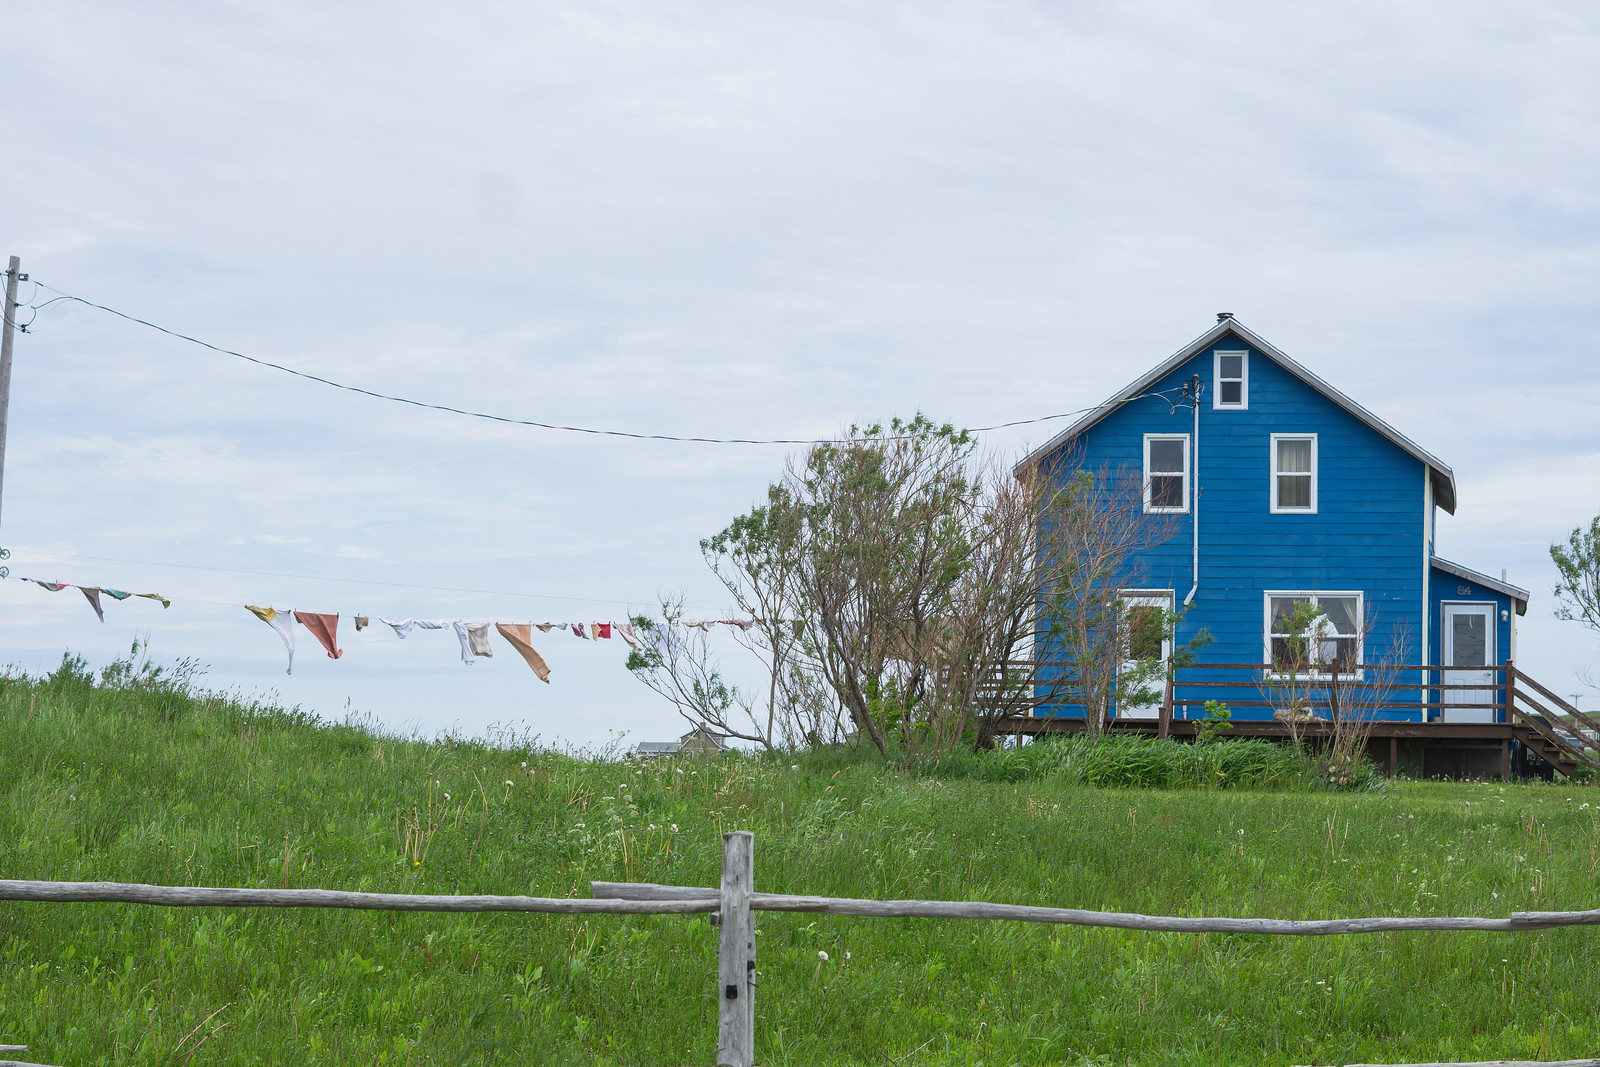 There is something inviting about a house with a line of clothing dancing in the wind. Loved this blue house in Fatima, Quebec.